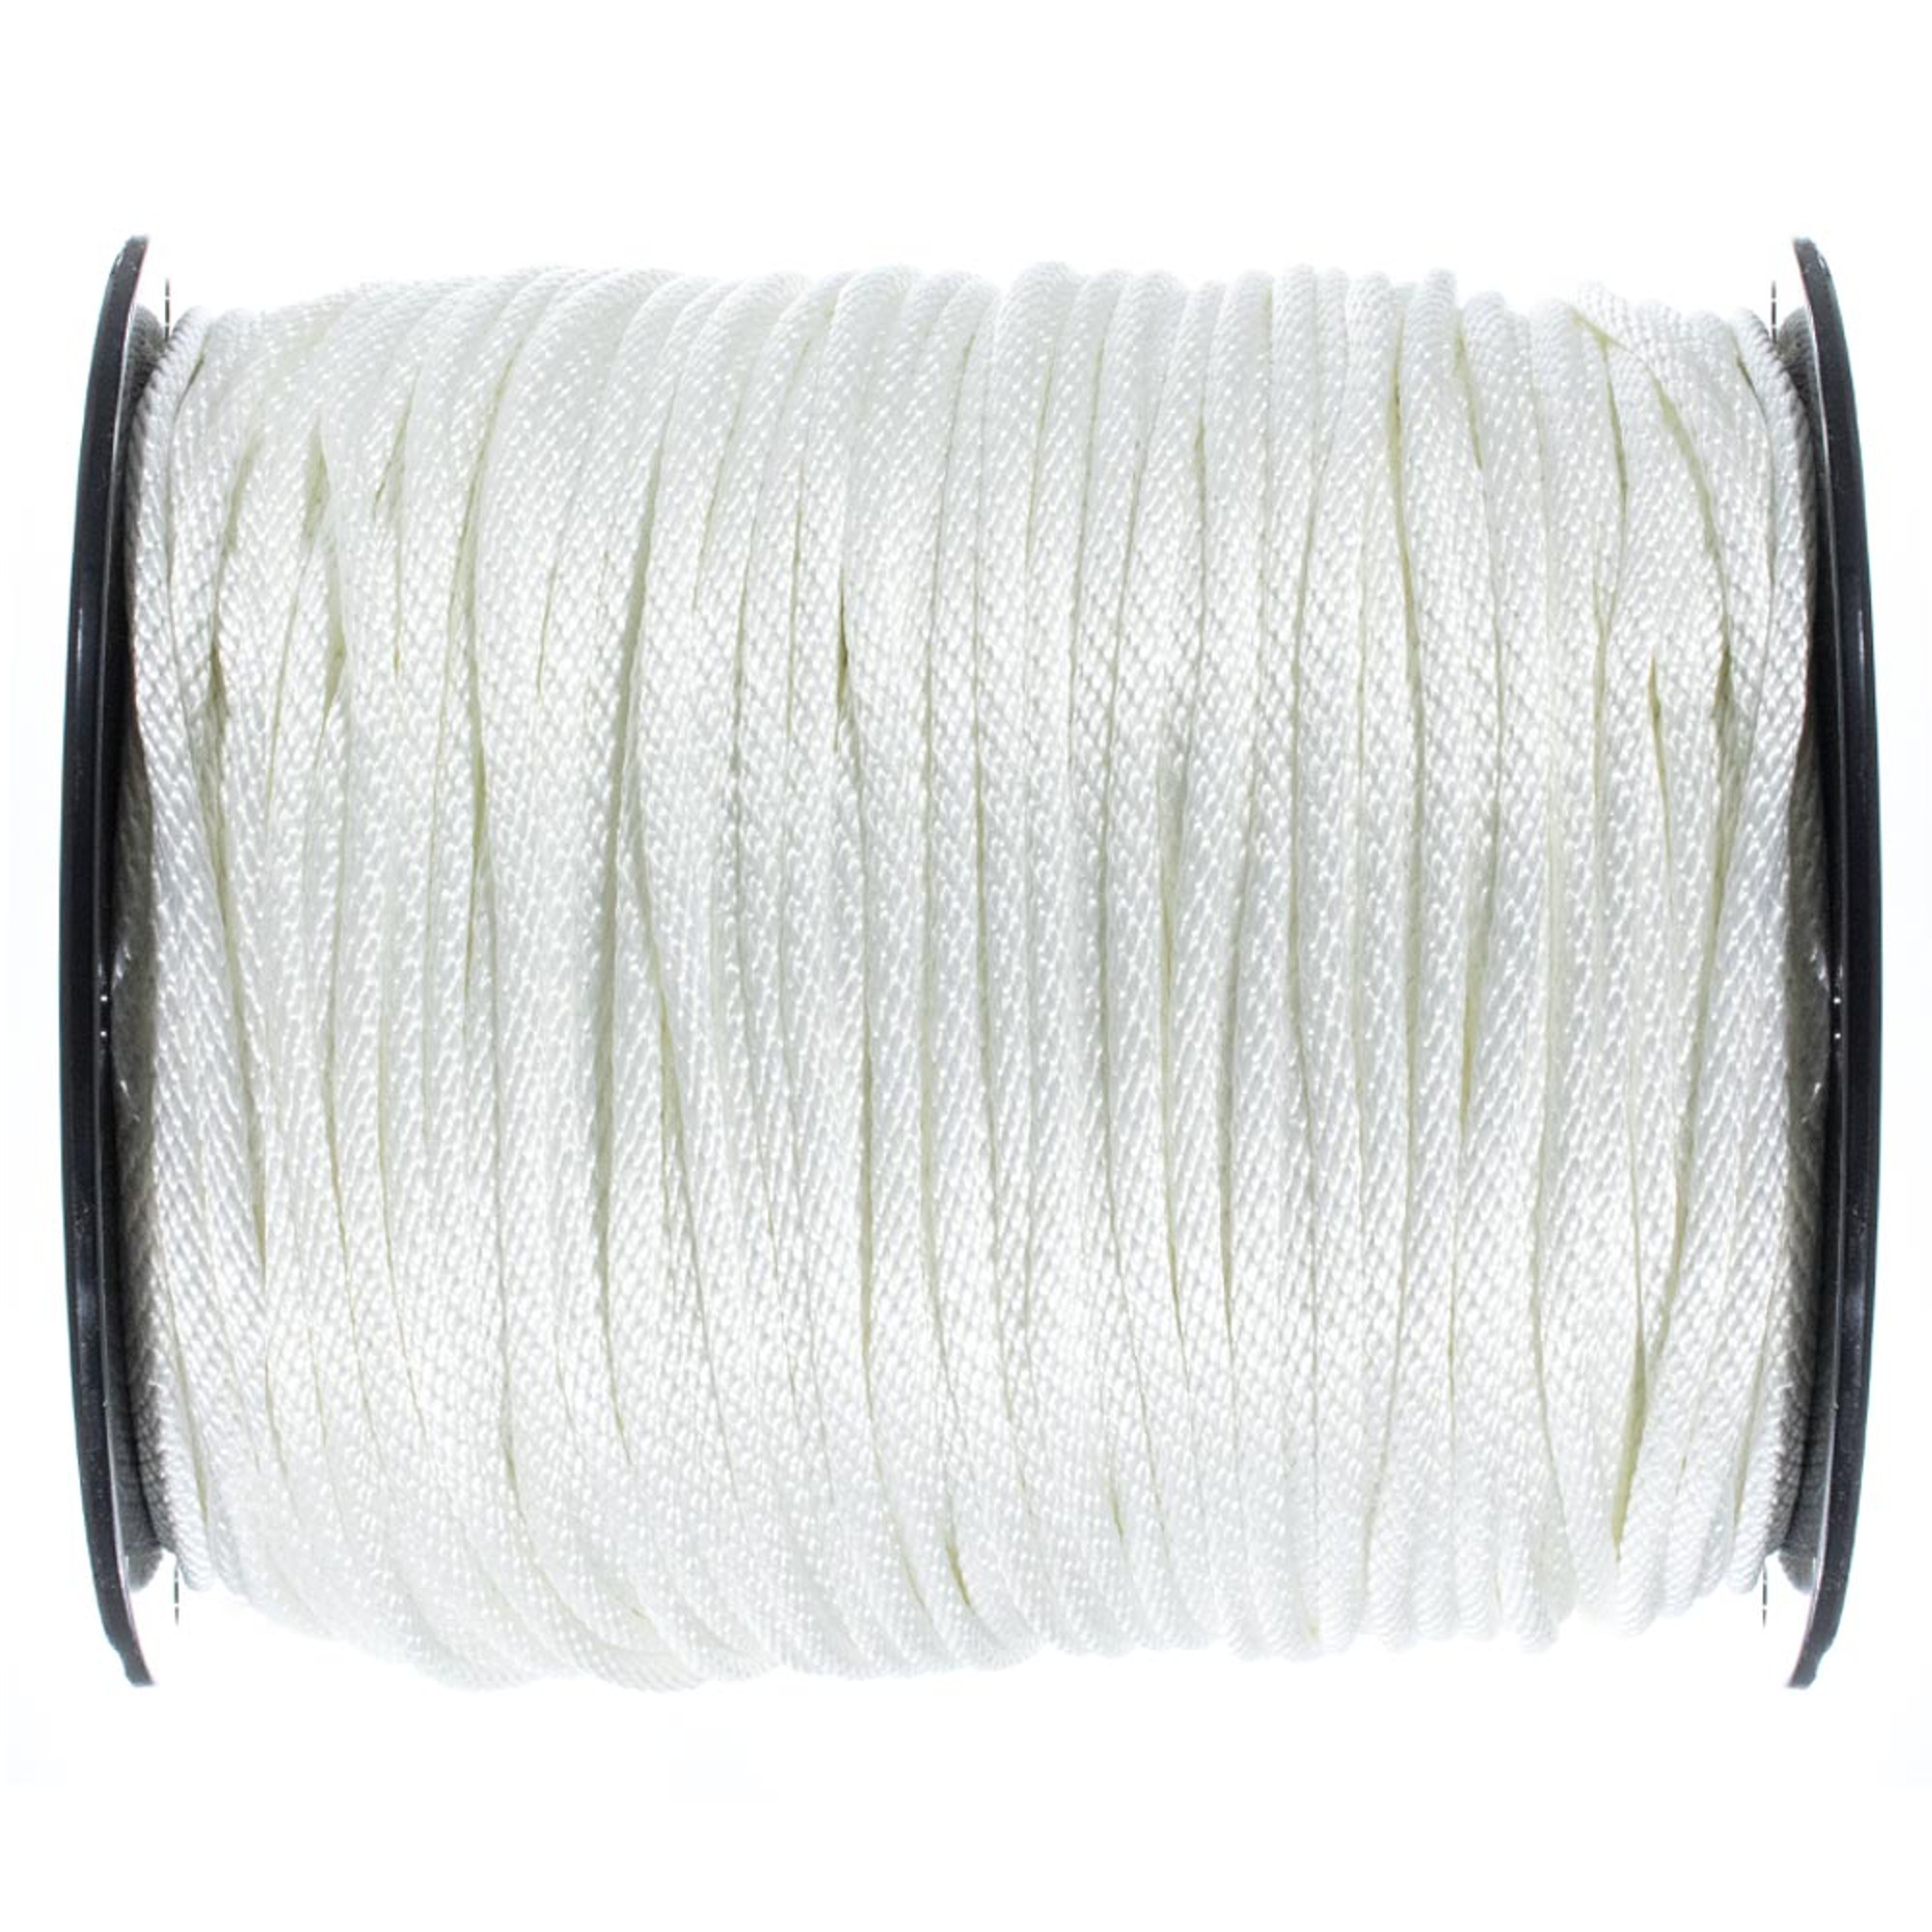 Seachoice Twist Nyln Rope-White-1/4 X 600 40790 Other In-Car Technology